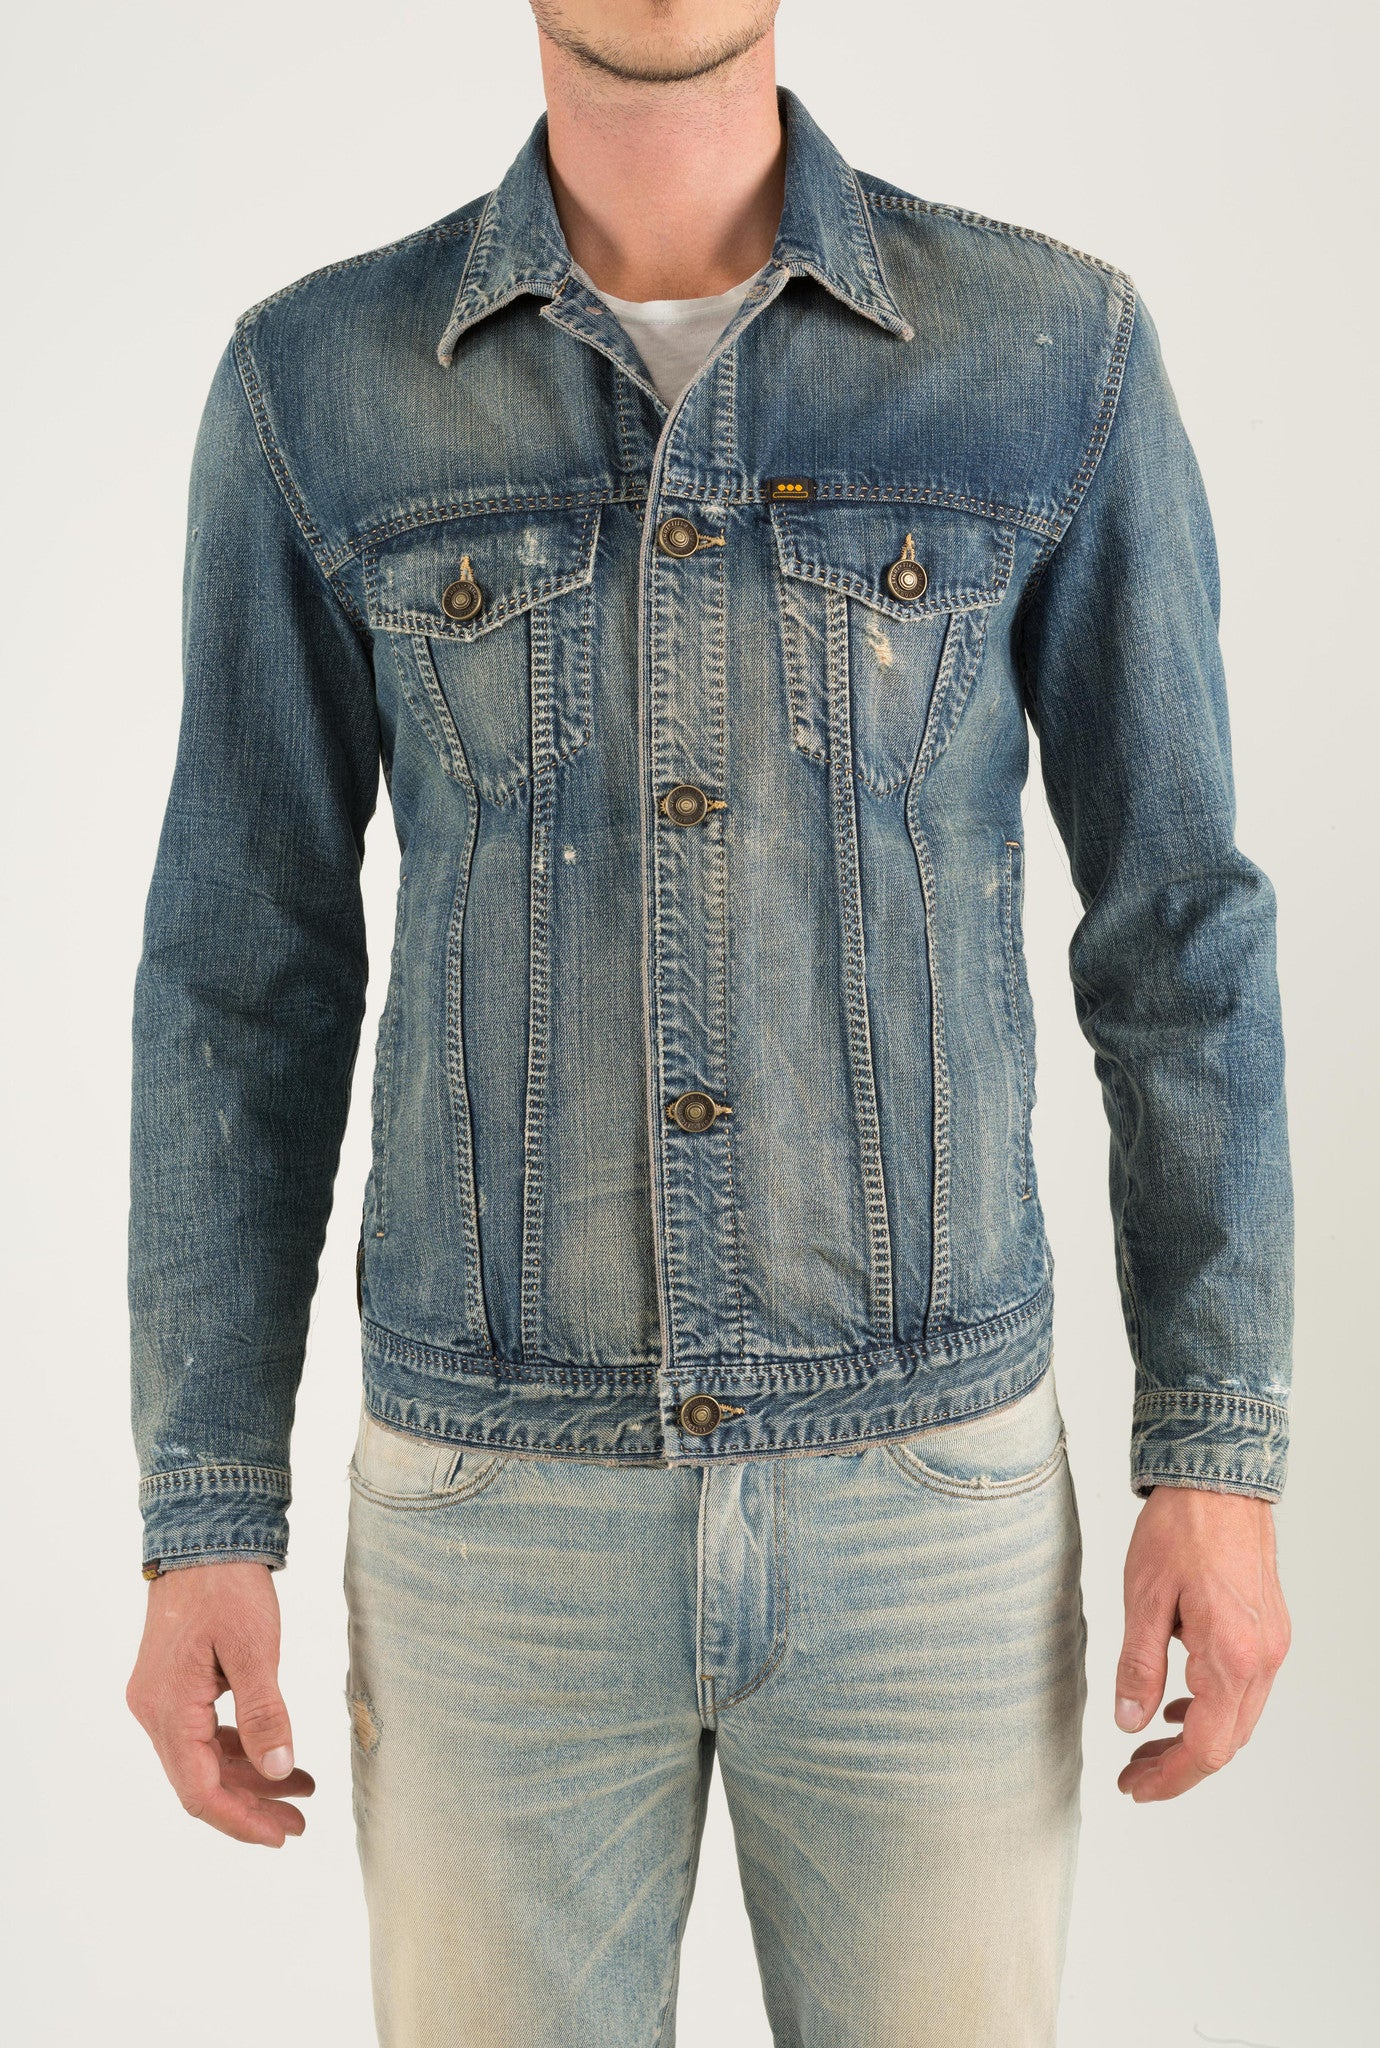 Oliver Denim Jacket - It's A Great Feeling